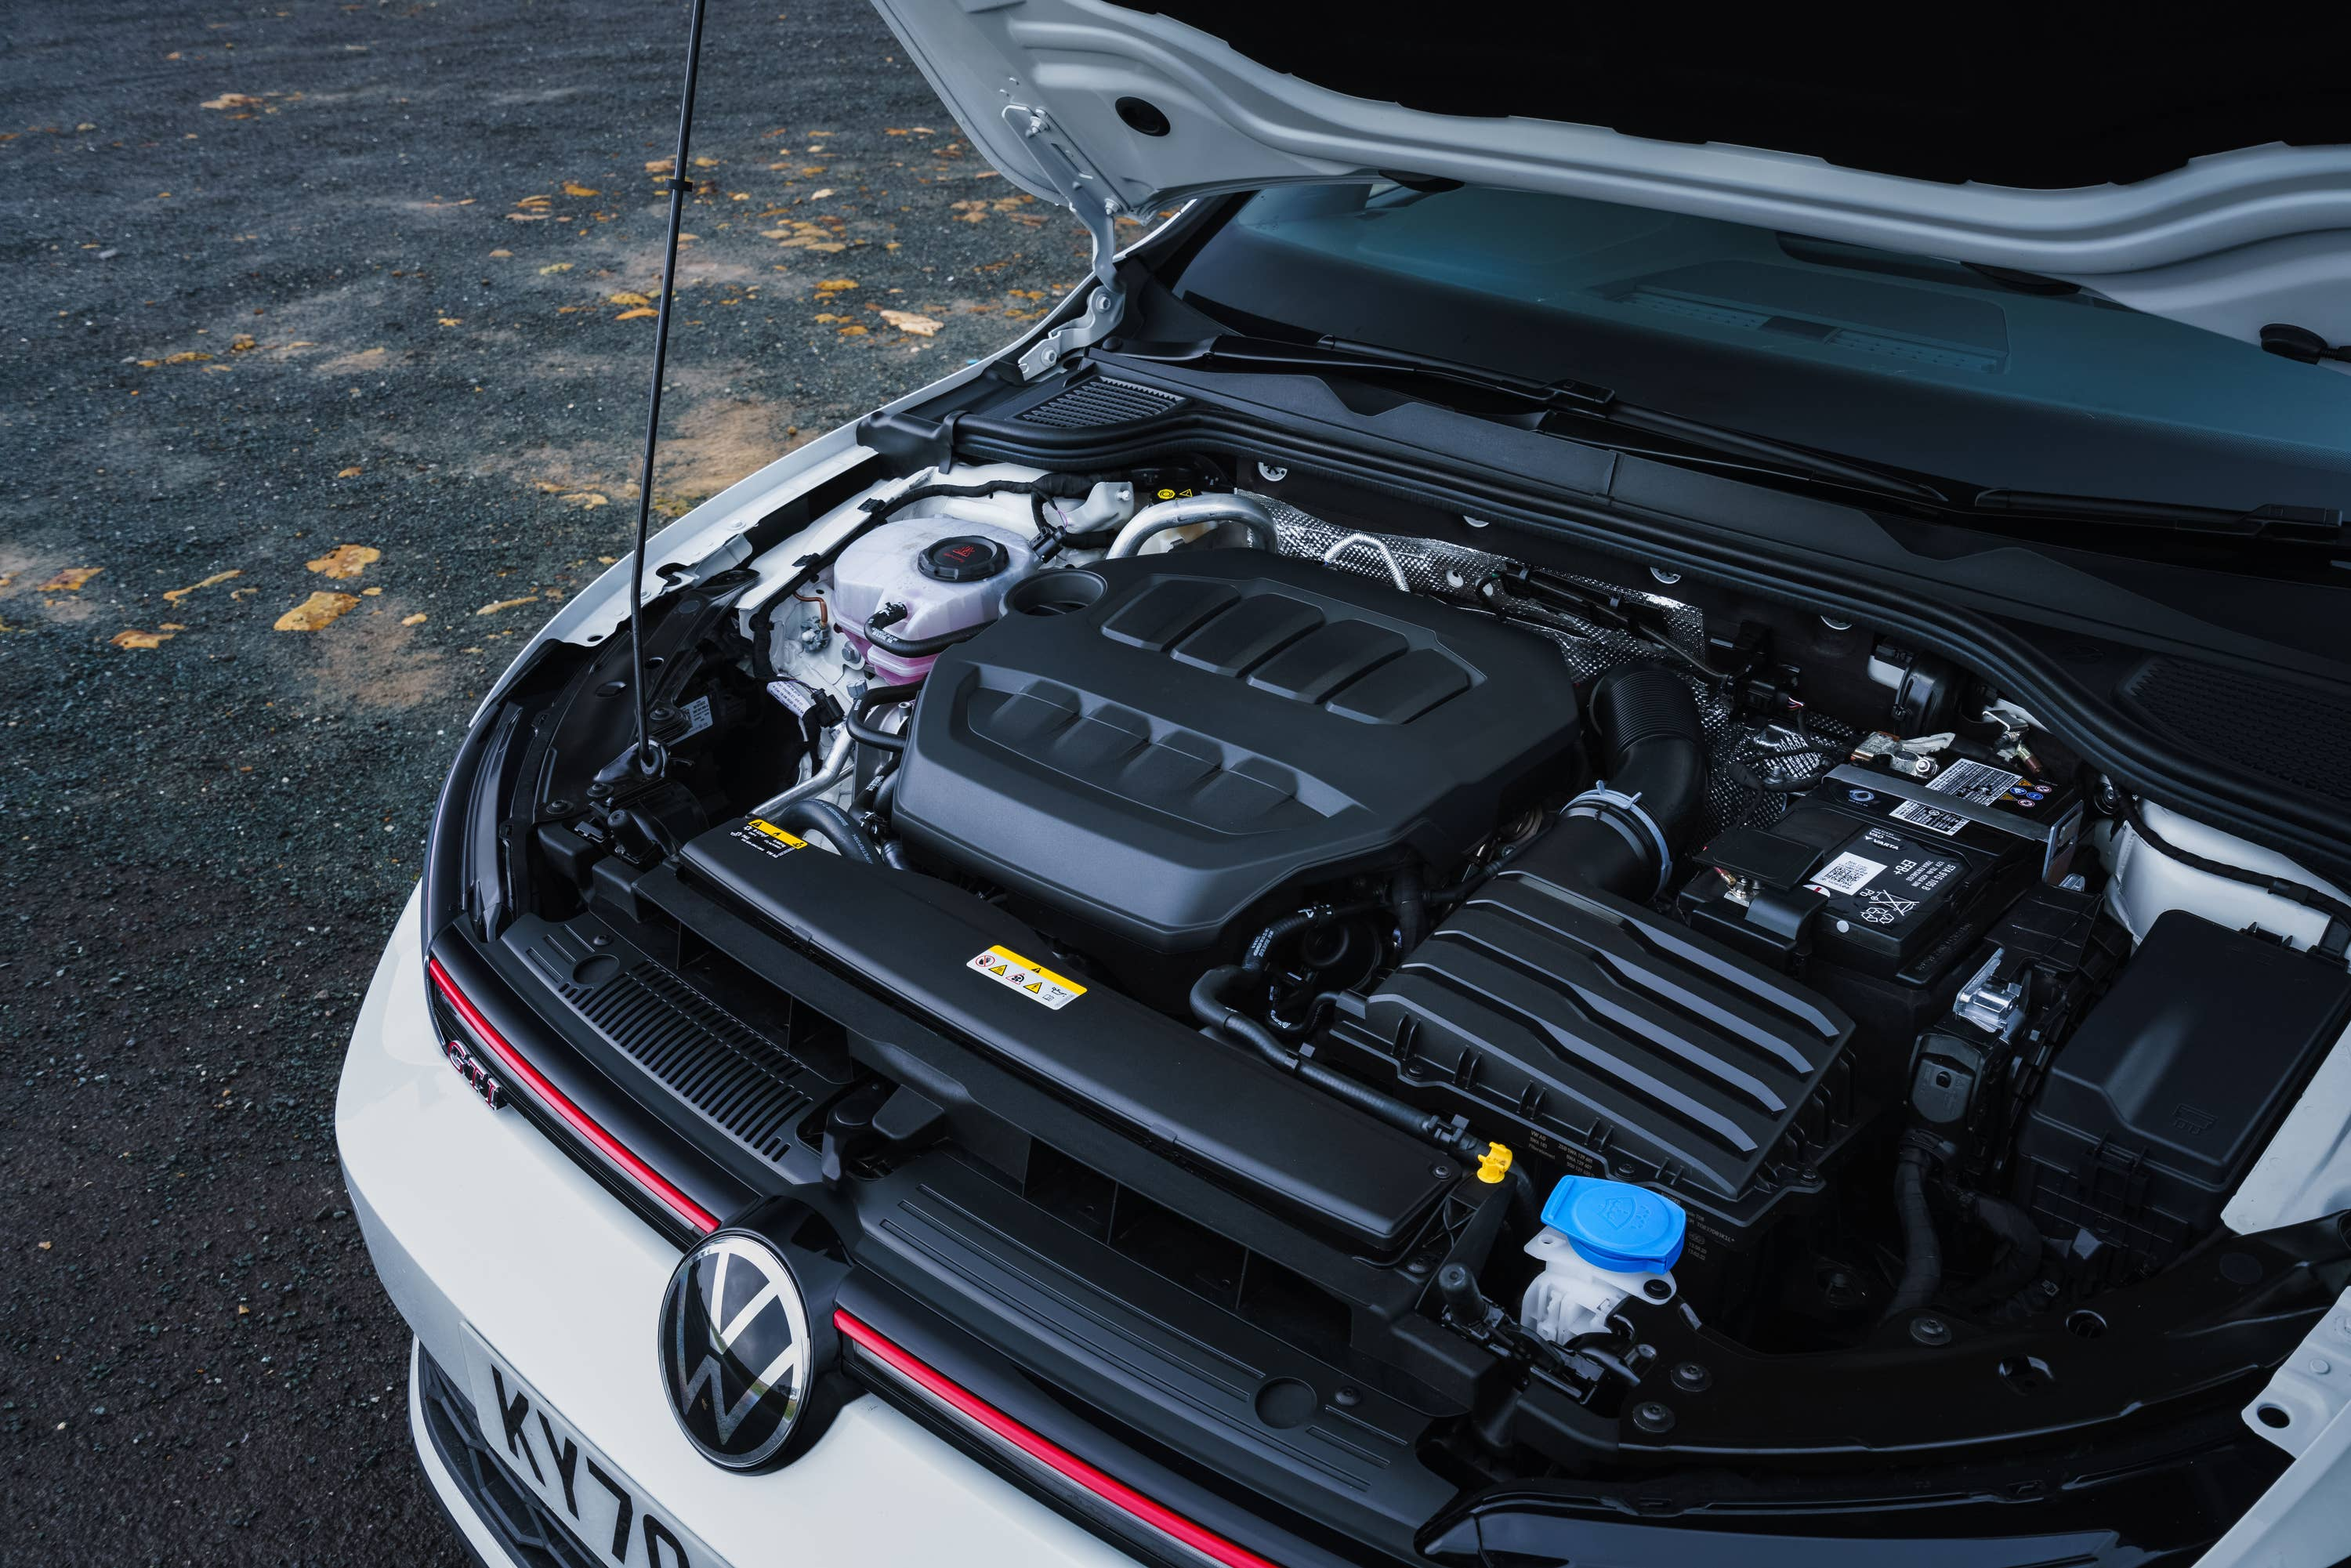 under the bonnet of volkswagen golf gti